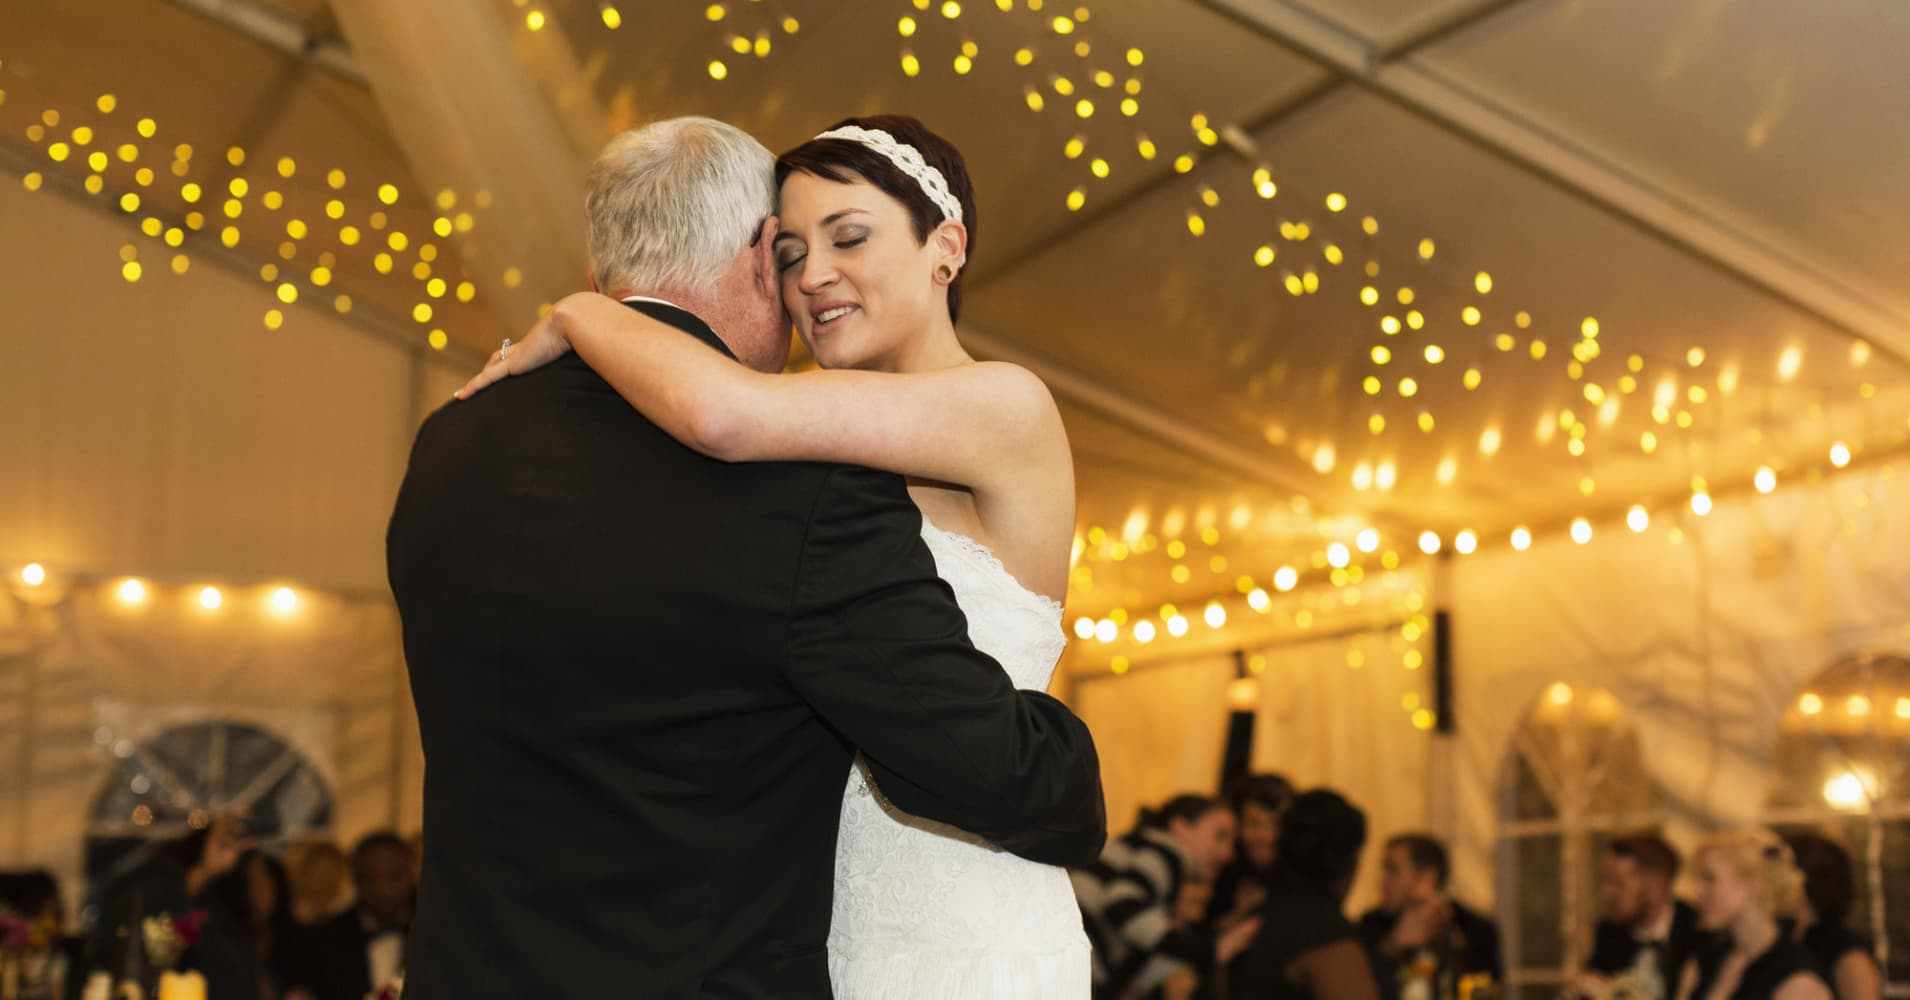 Wedded: Mary Gilliam and Andrew Norman had a farm-style wedding